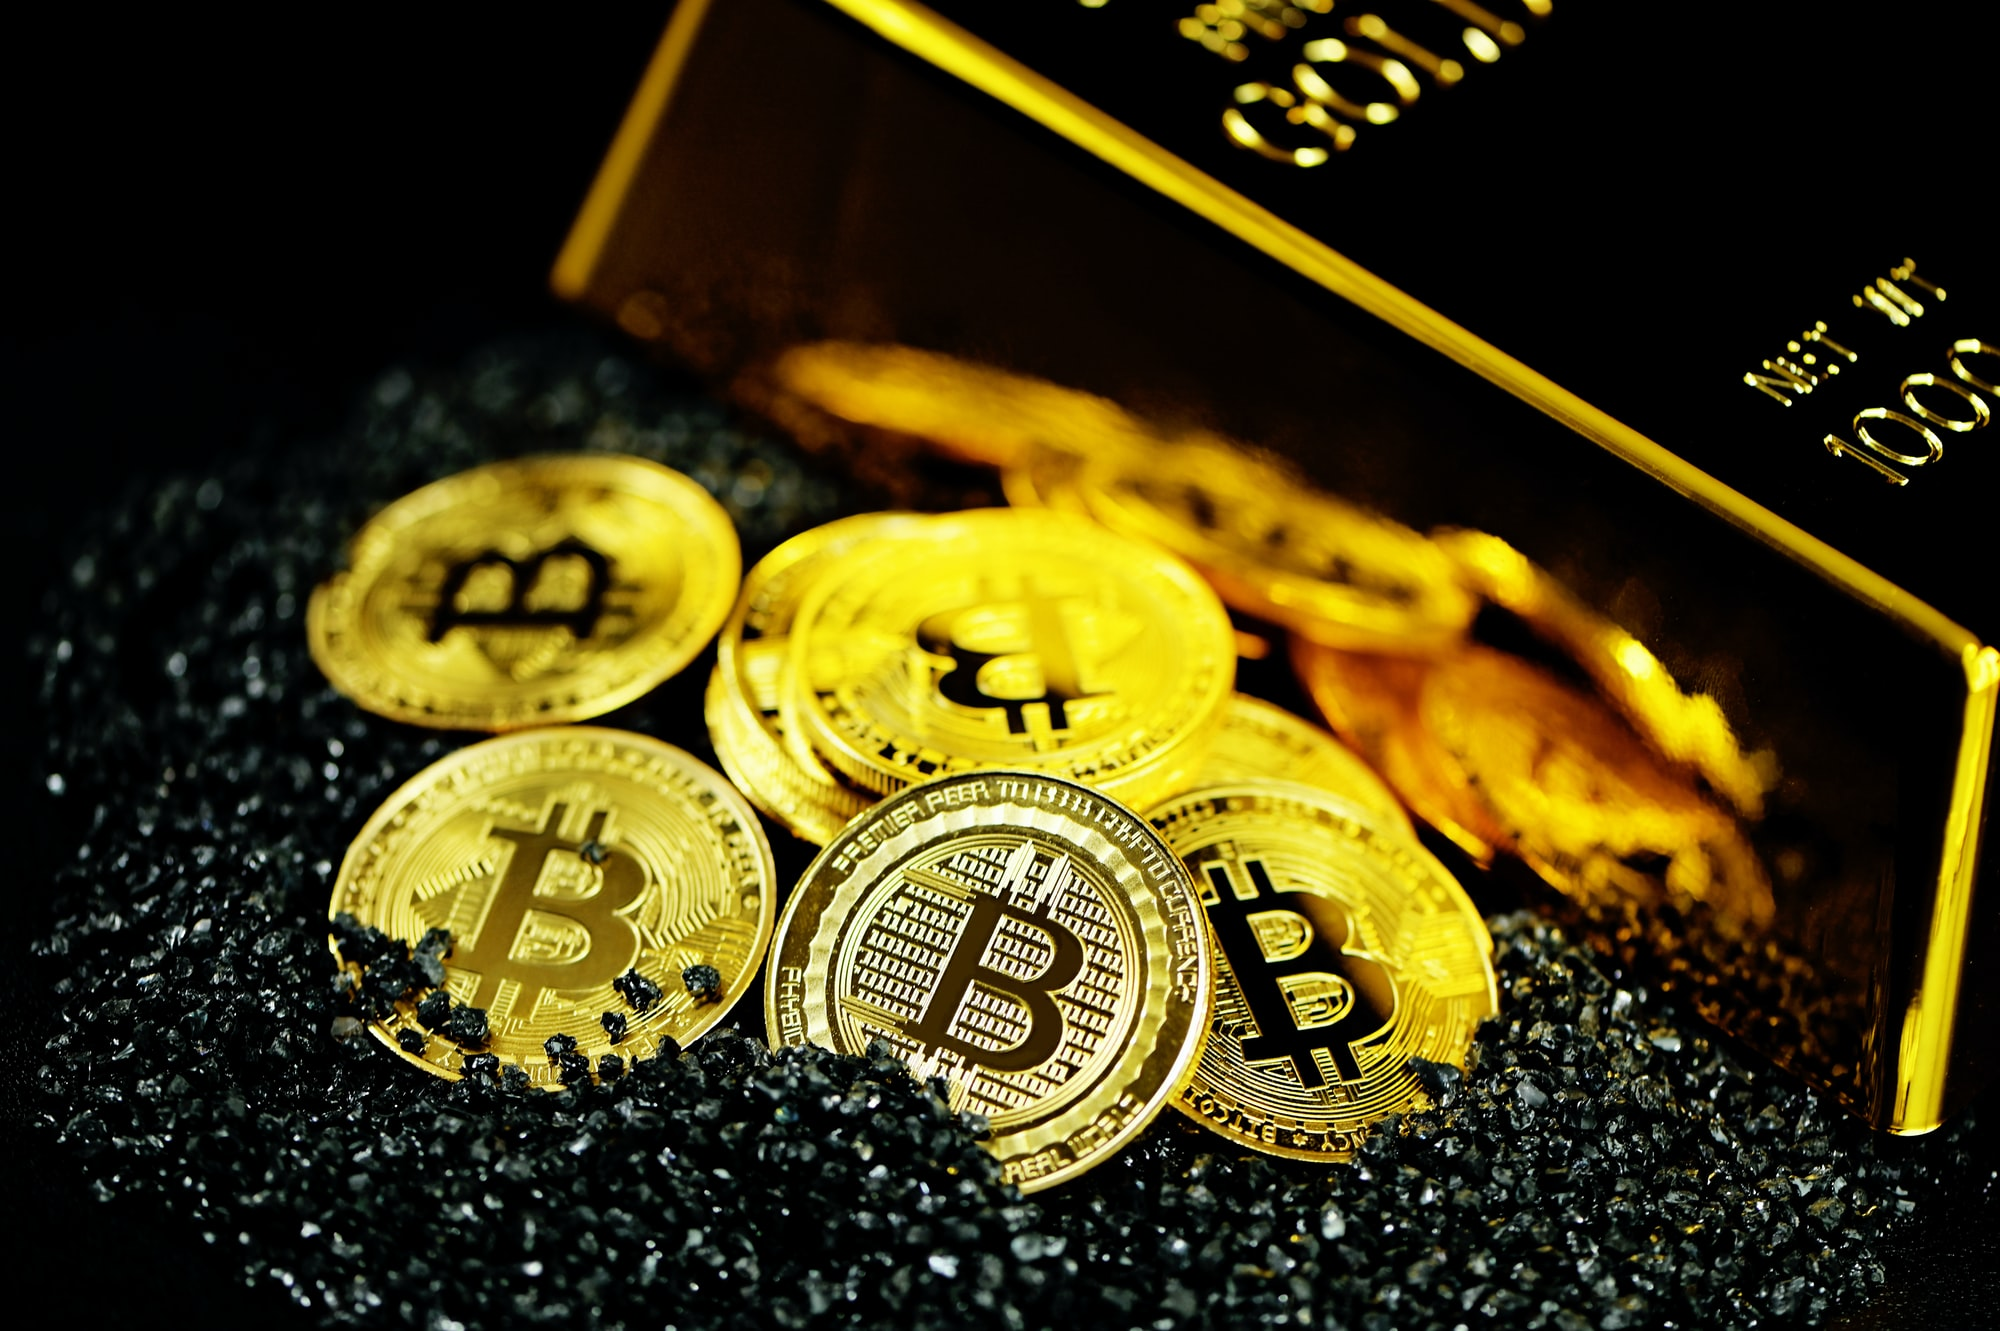 Bitcoin coin in black with a shining gold